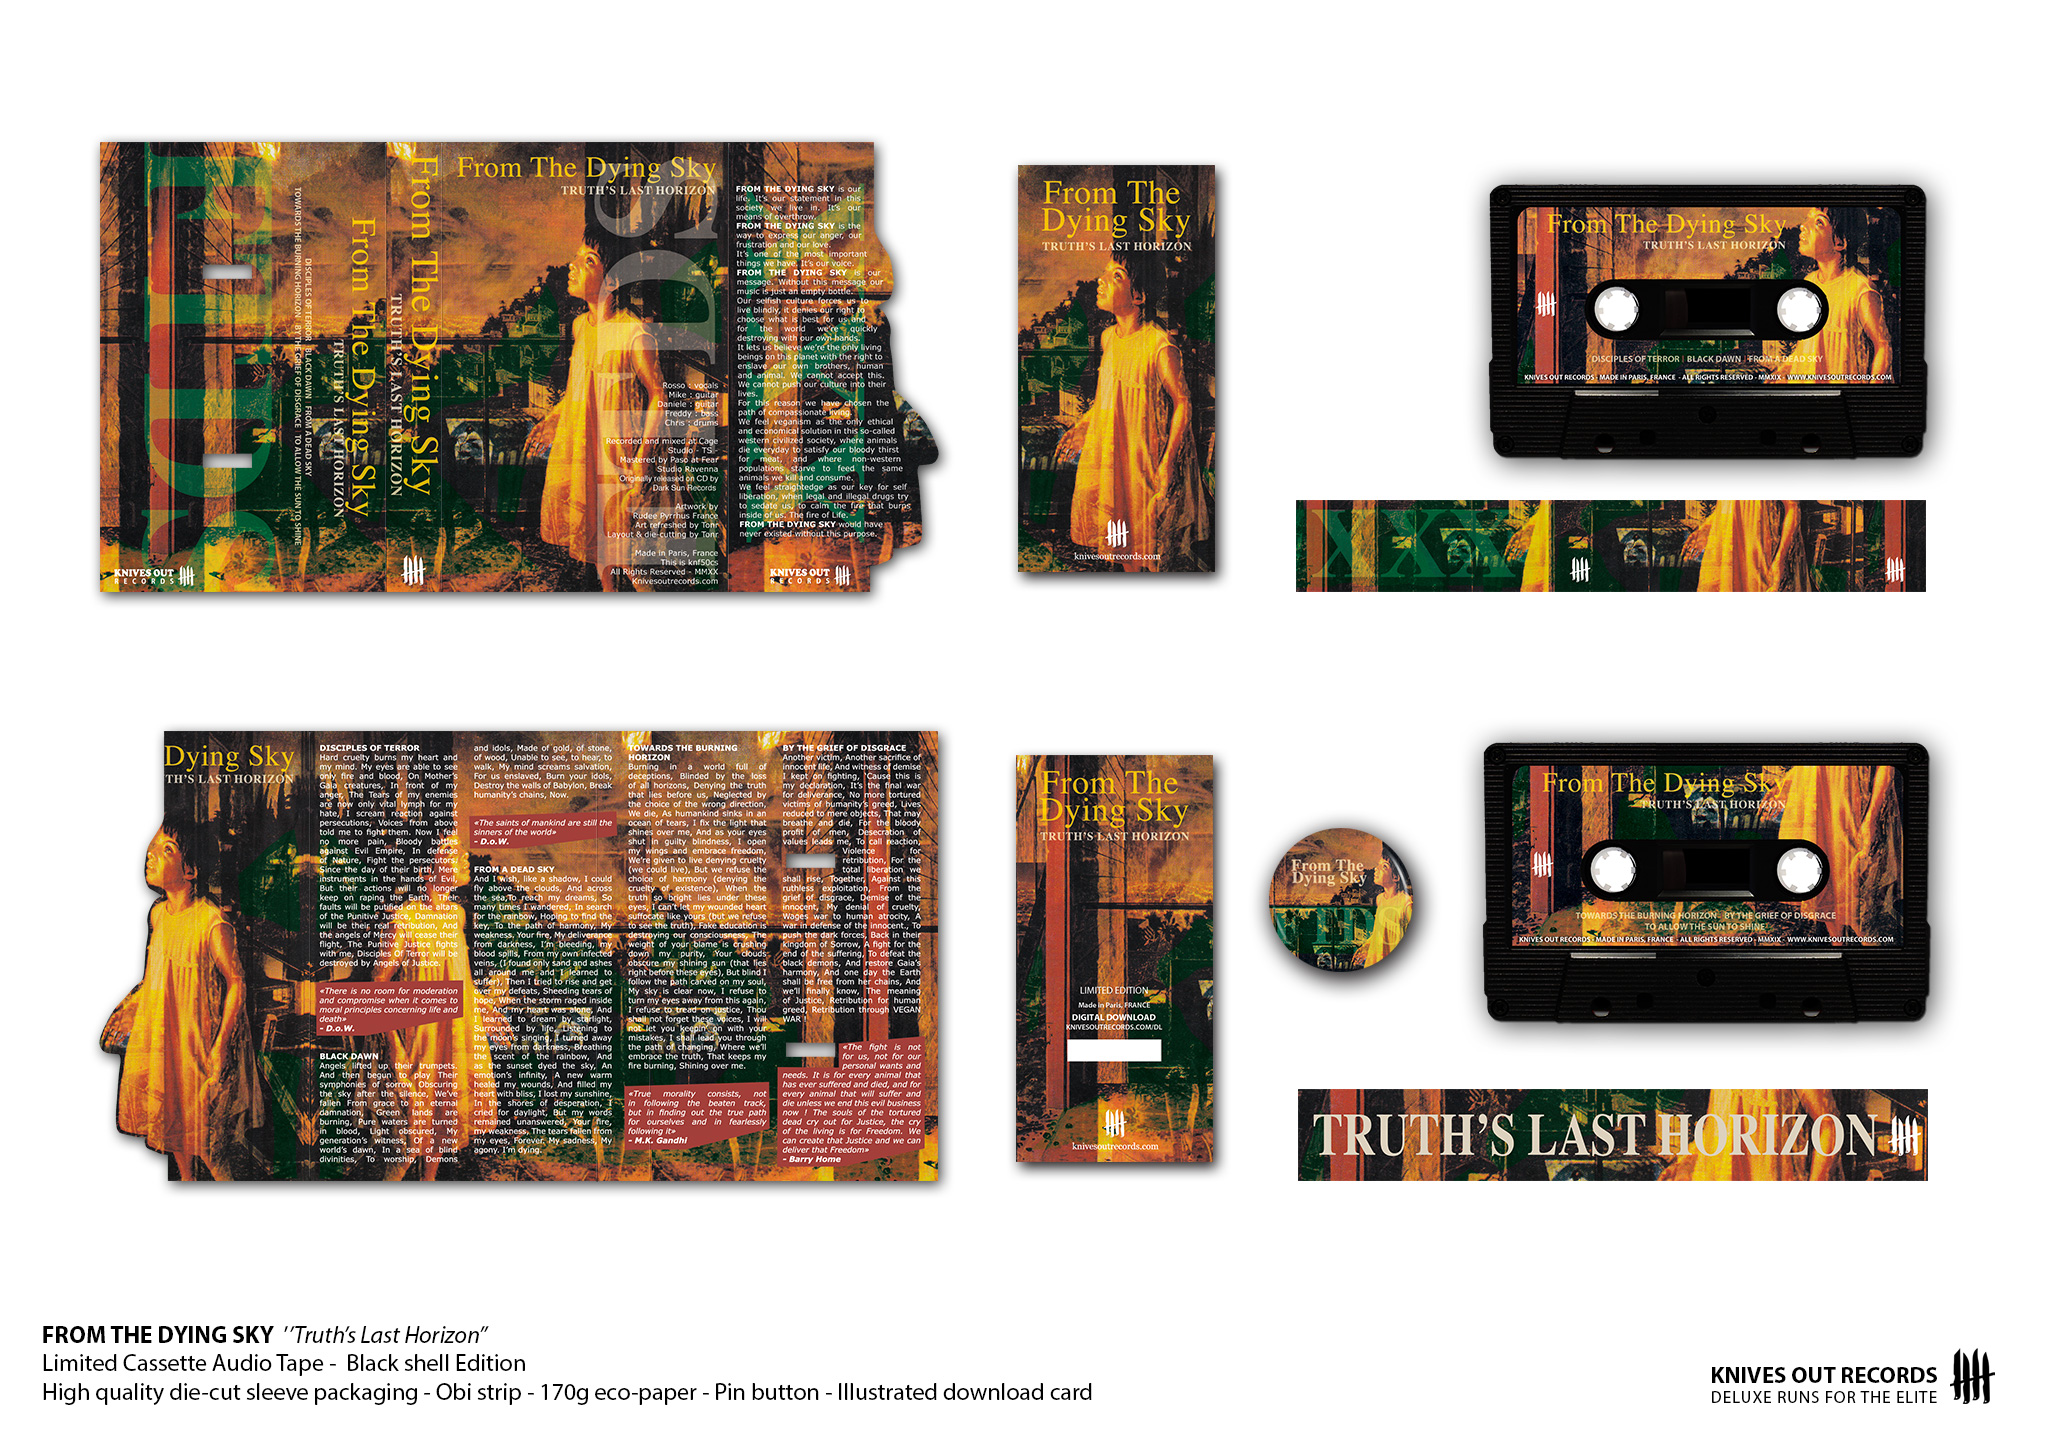 "FROM THE DYING SKY ""Truth's Last Horizon"" cassette audio tape"